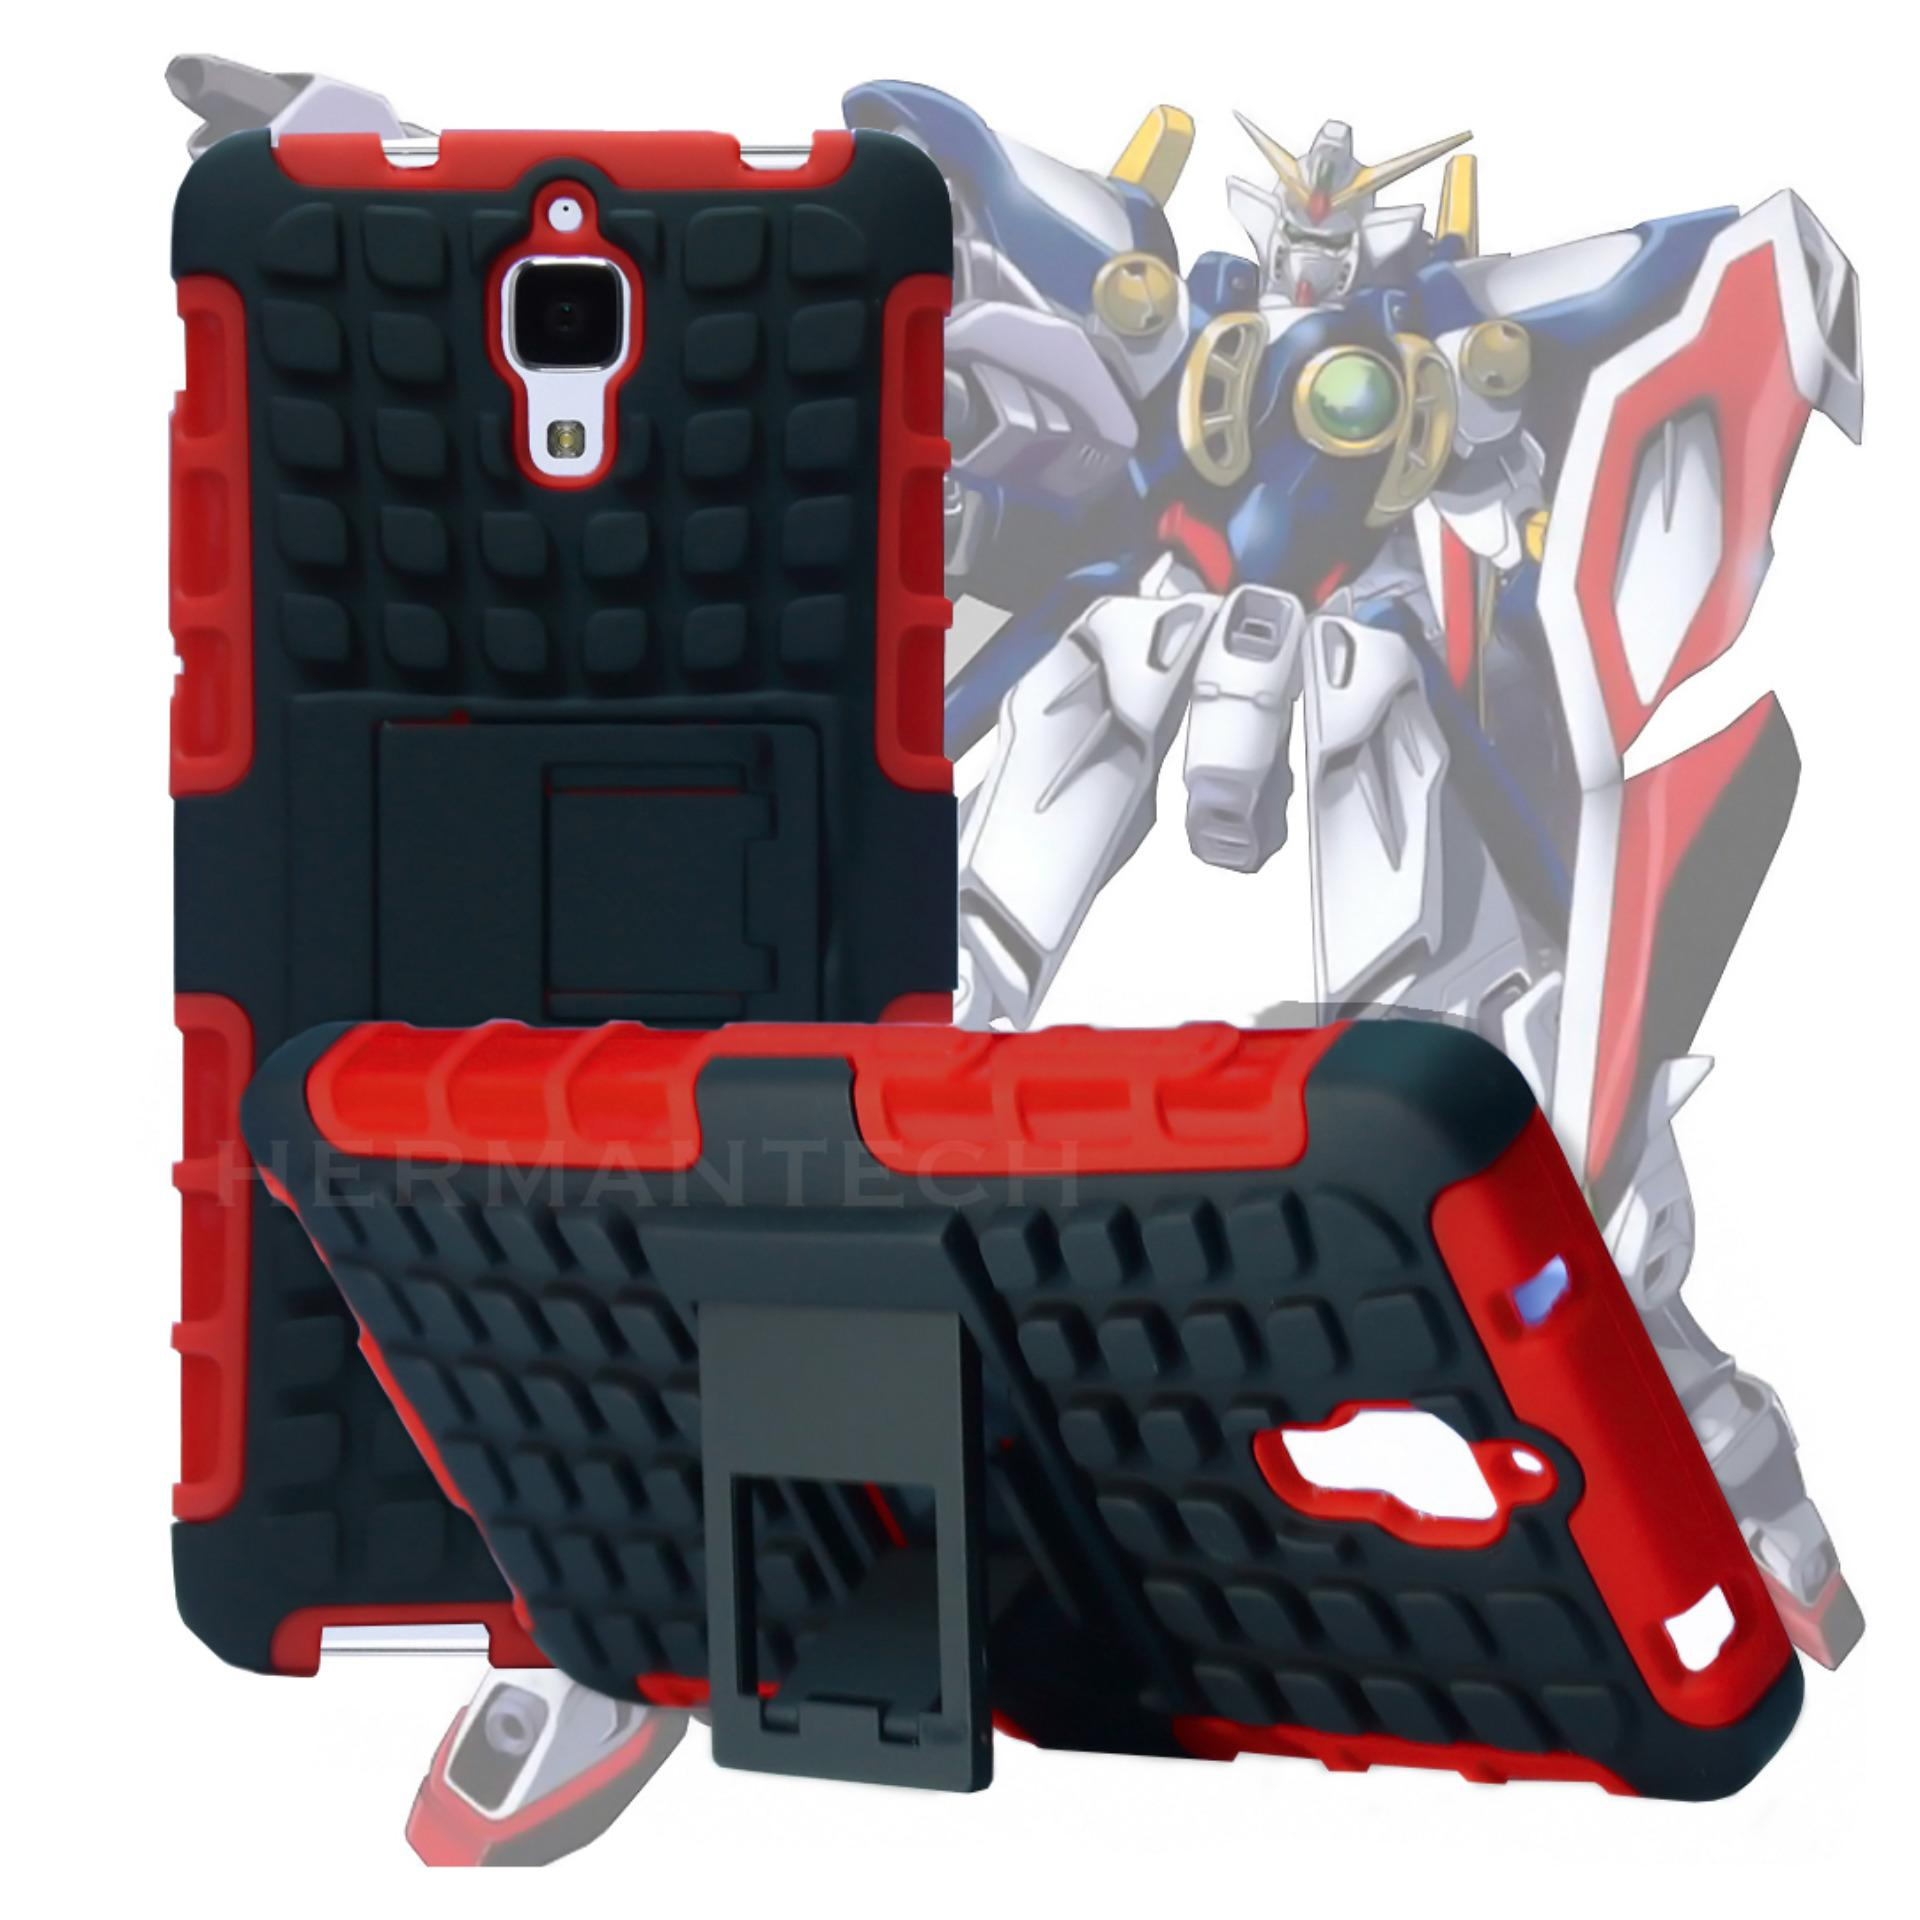 ... Case for Xiaomi Mi 4 Robotic Rugged Armor With Kickstand - Red ...